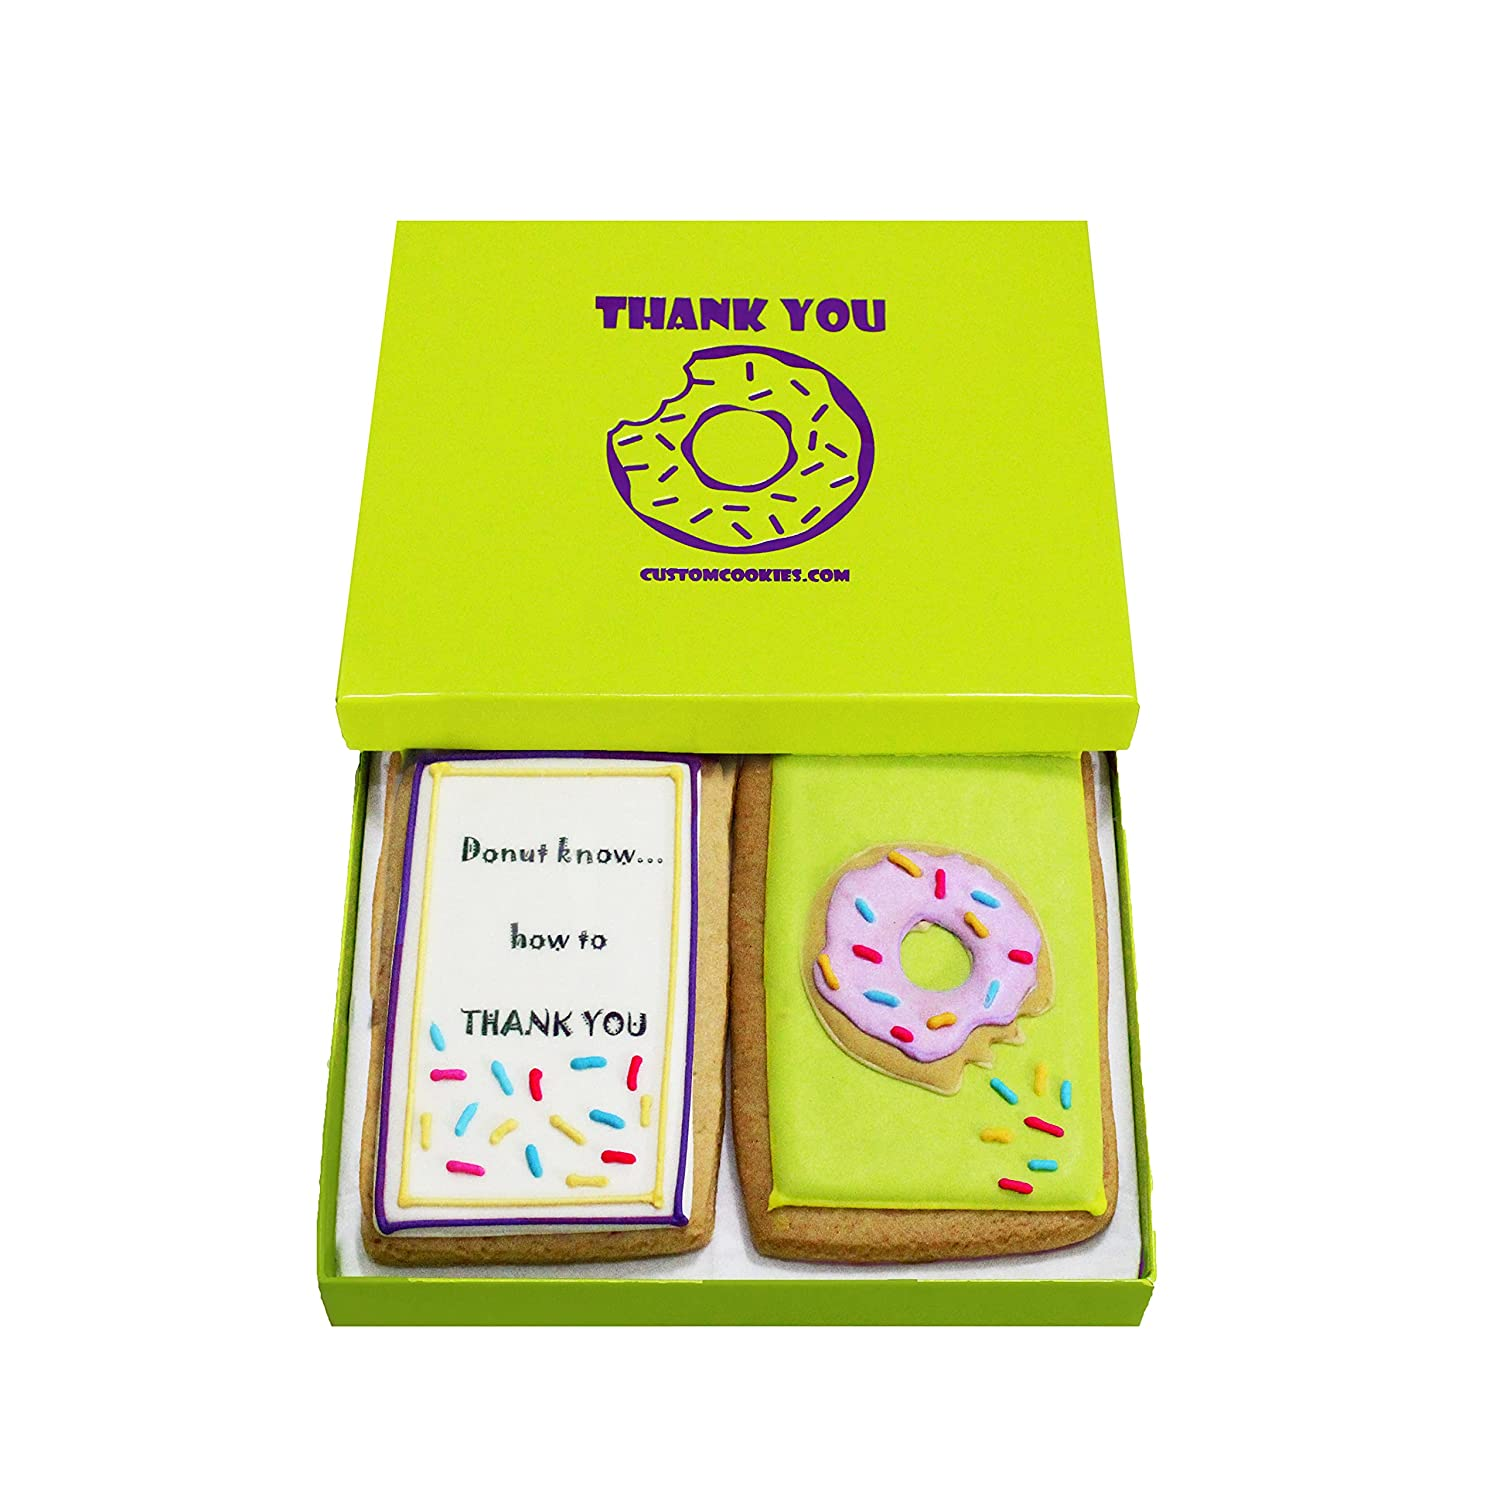 Gourmet Cookie Thank You half Gift Set Delicious Large 2.5 Be super welcome 2 x 4.5